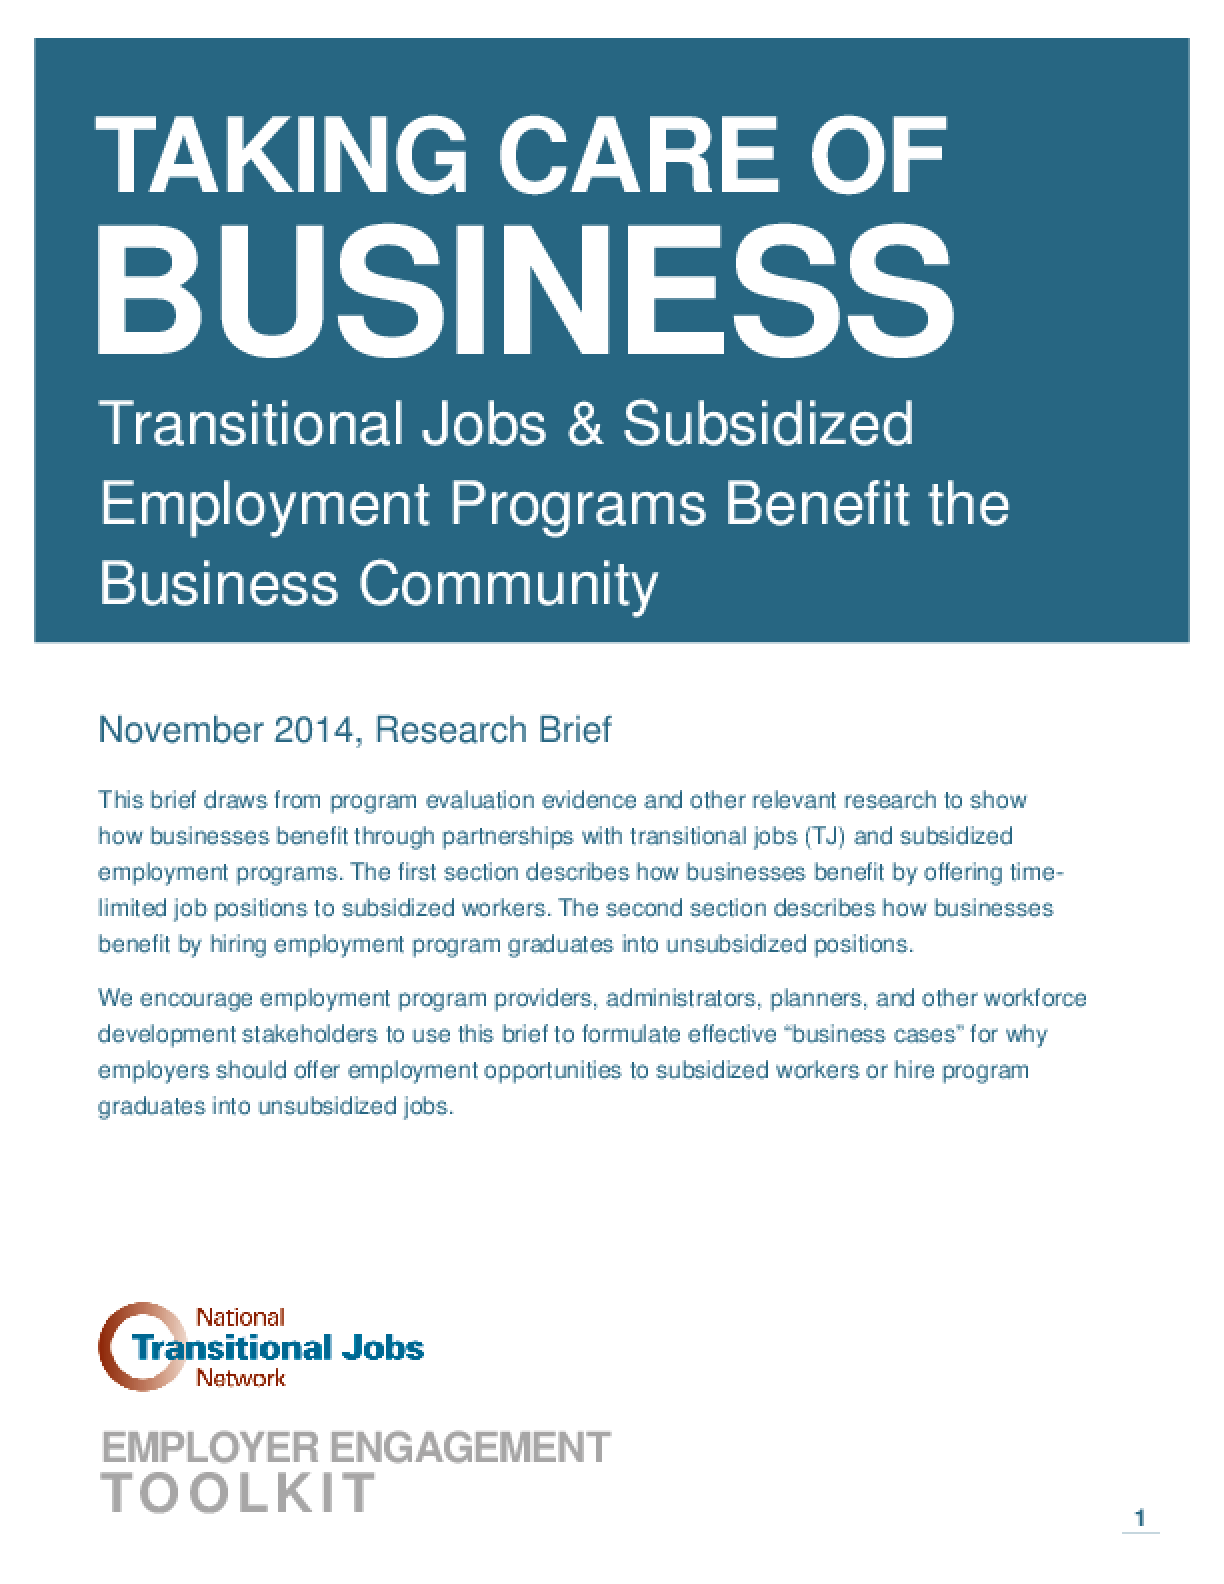 Taking Care of Business: Transitional Jobs and Subsidized Employment Programs Benefit the Business Community